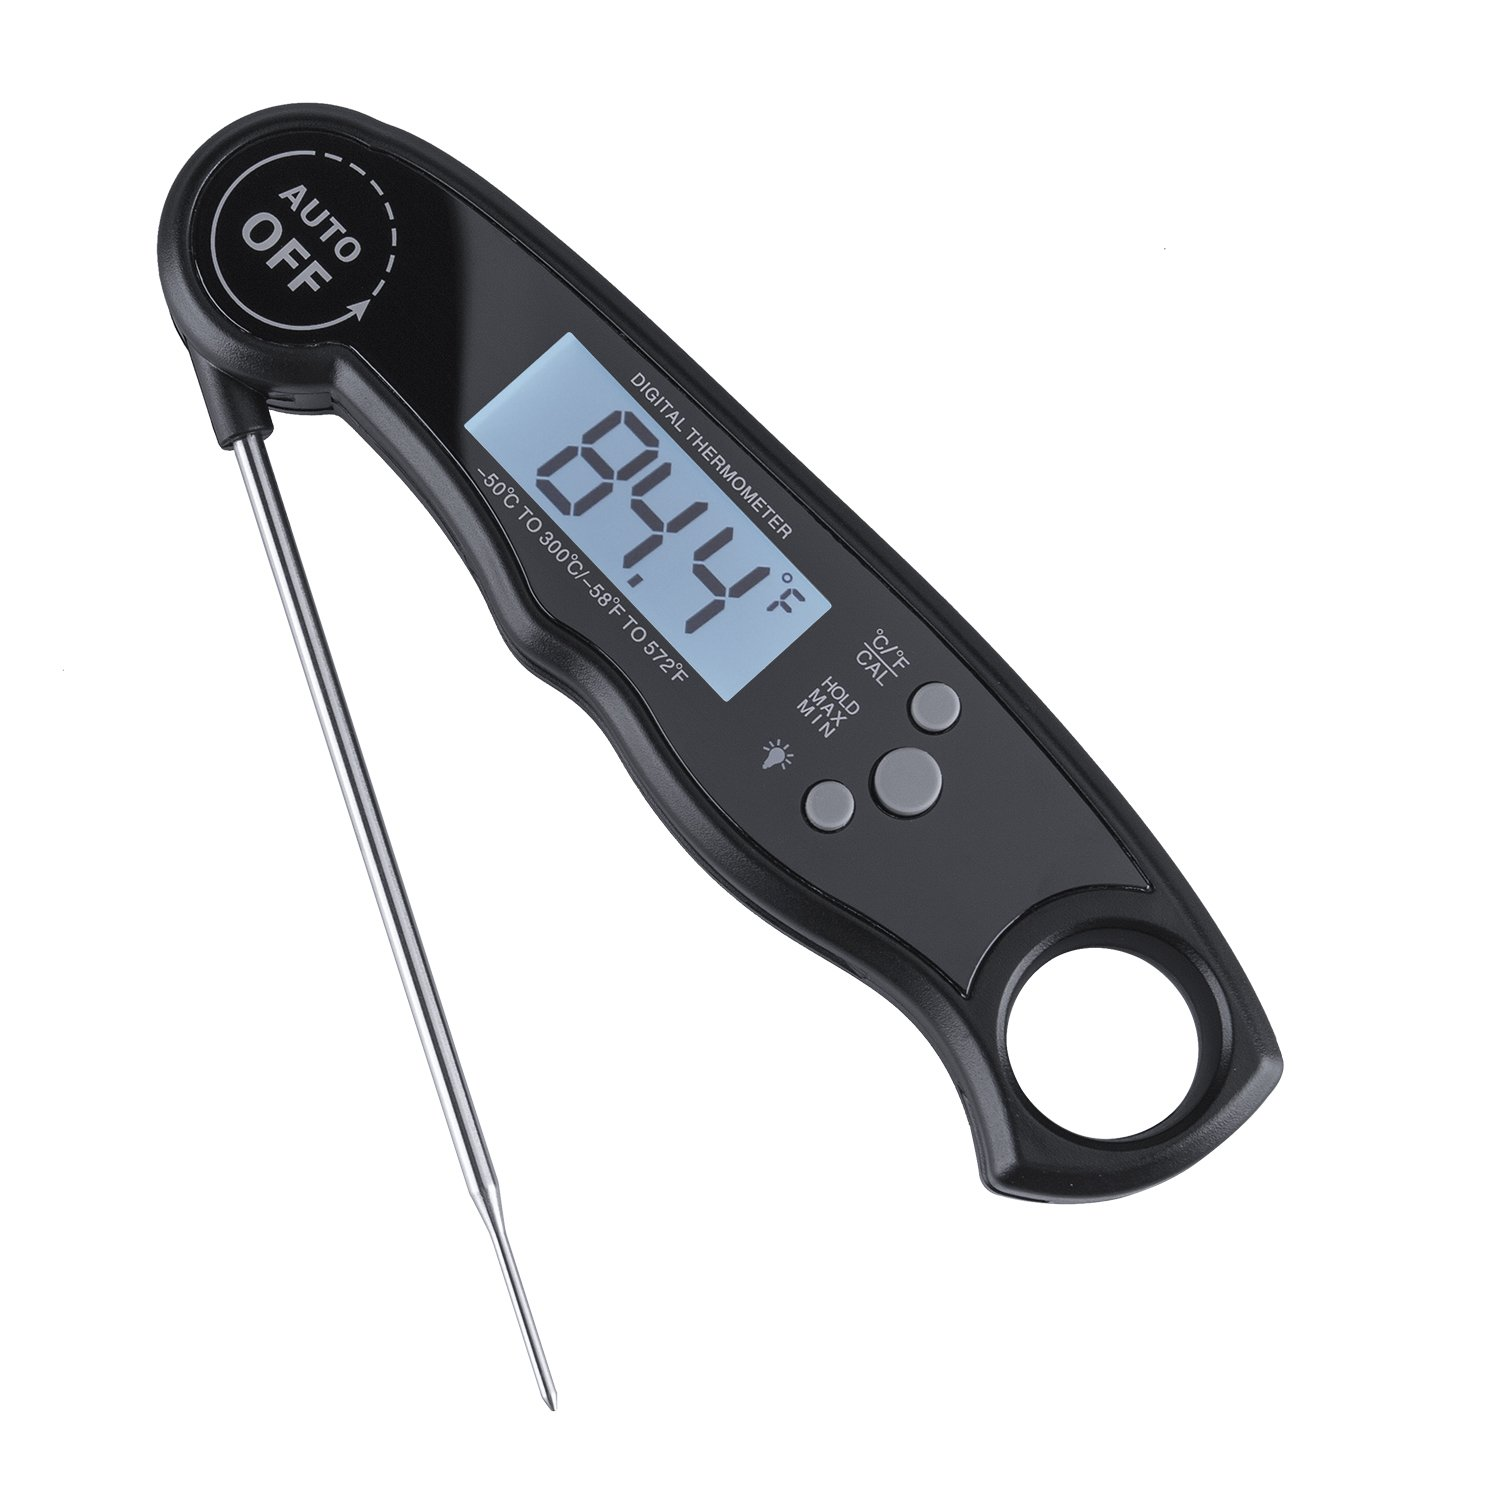 Meat Thermometer, AIBIS Ultra Fast Instant Read Thermometer with Collapsible Probe and Magnet Waterproof Kitchen Cooking Thermometer for Outdoor BBQ Fork Grill Smoker Fry Food, Black